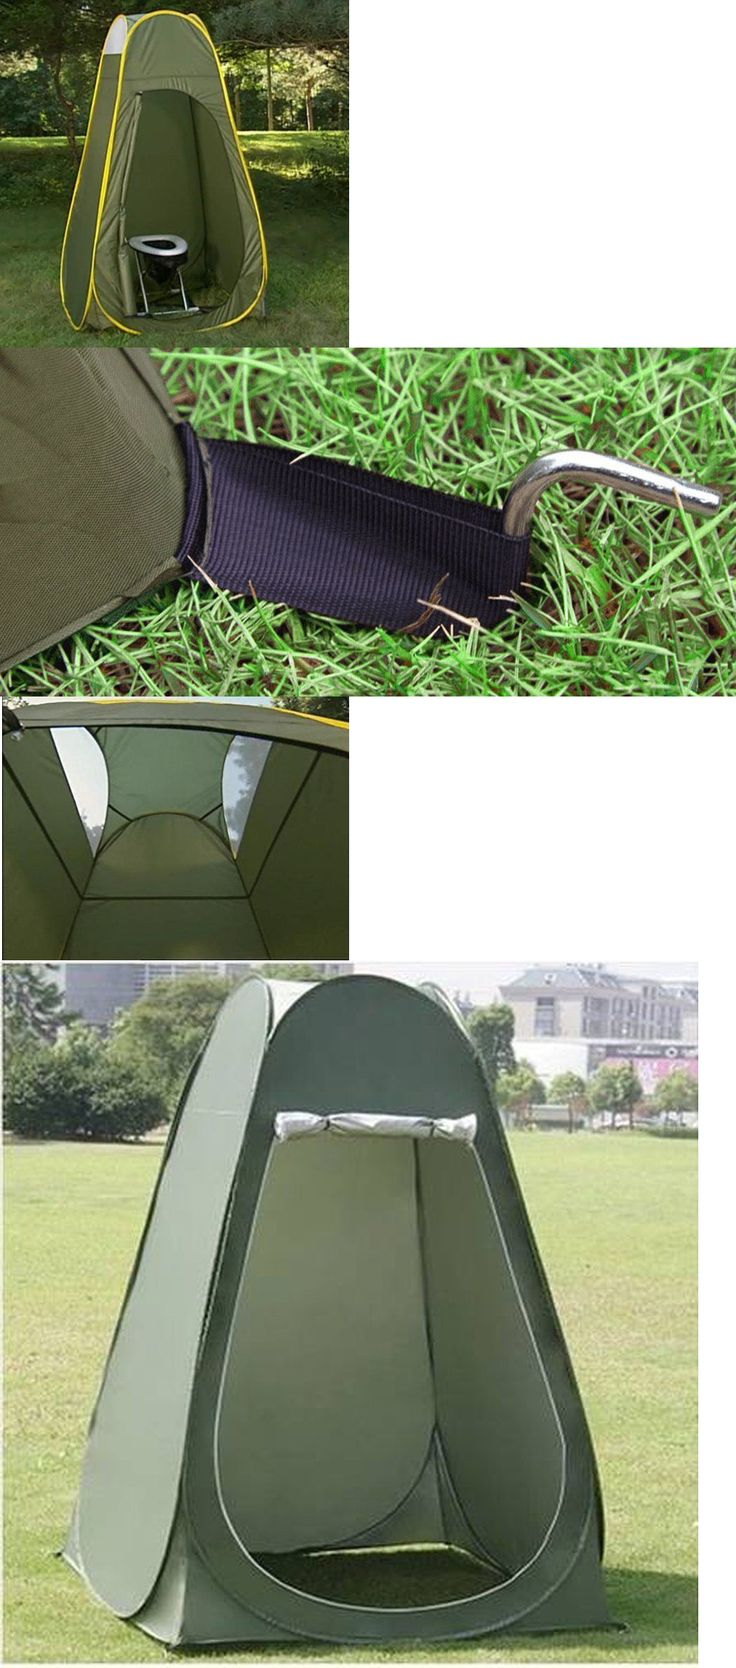 Outdoor Bathroom Tent 17 Best Ideas About Toilet Tent On Pinterest Camping Tricks